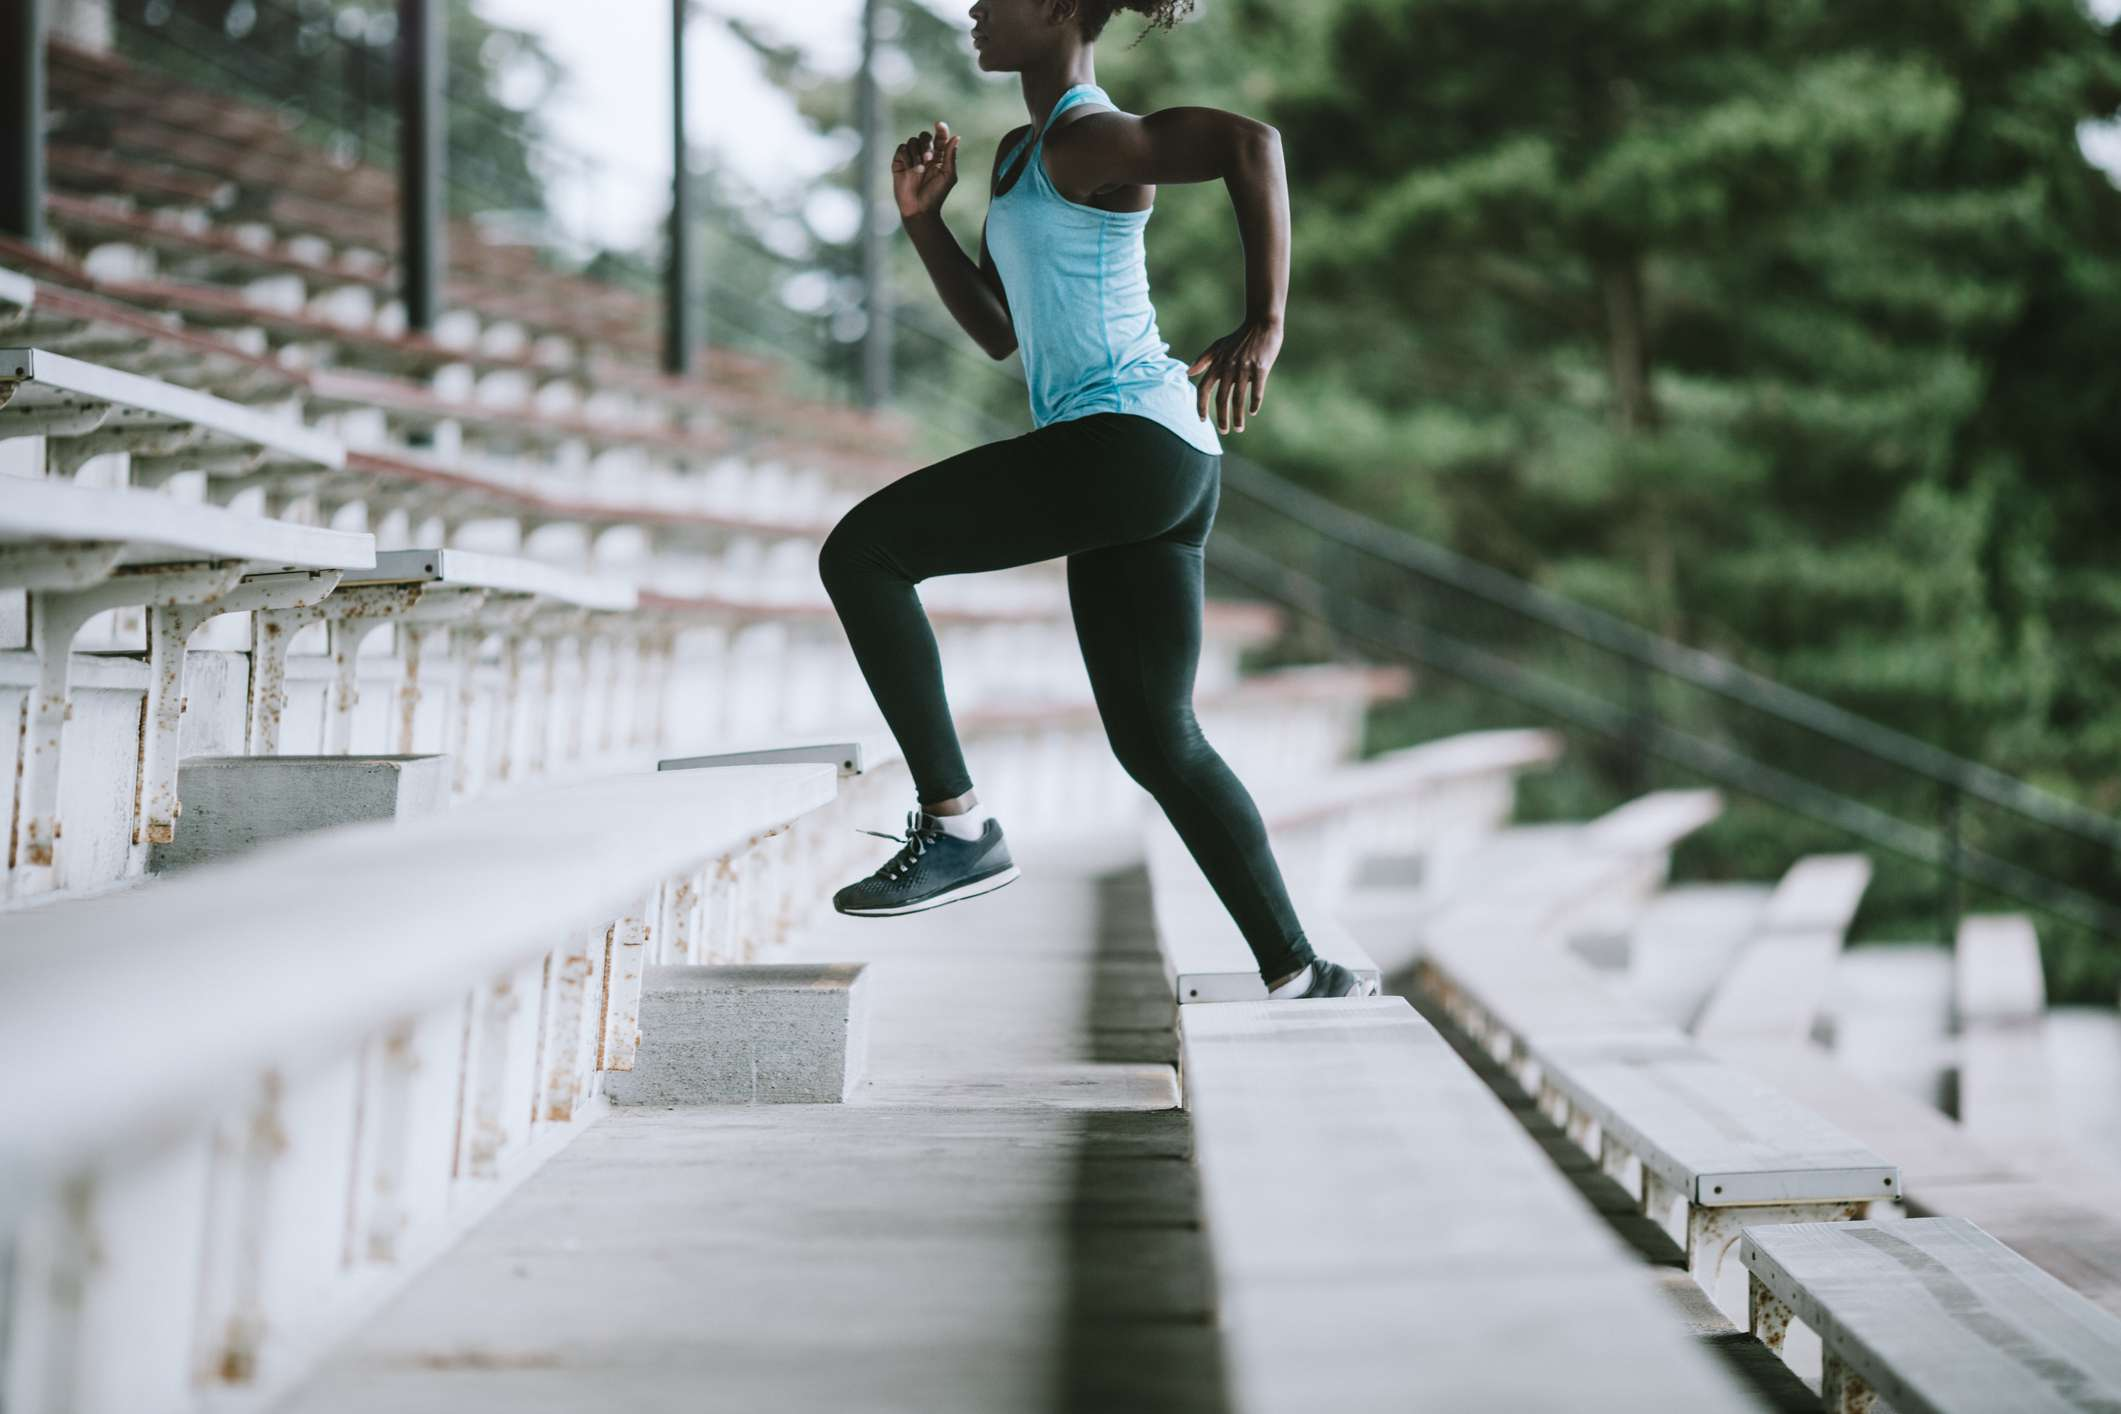 10 Best Interval Training Exercises How To Build Repeating Timer Stair Running